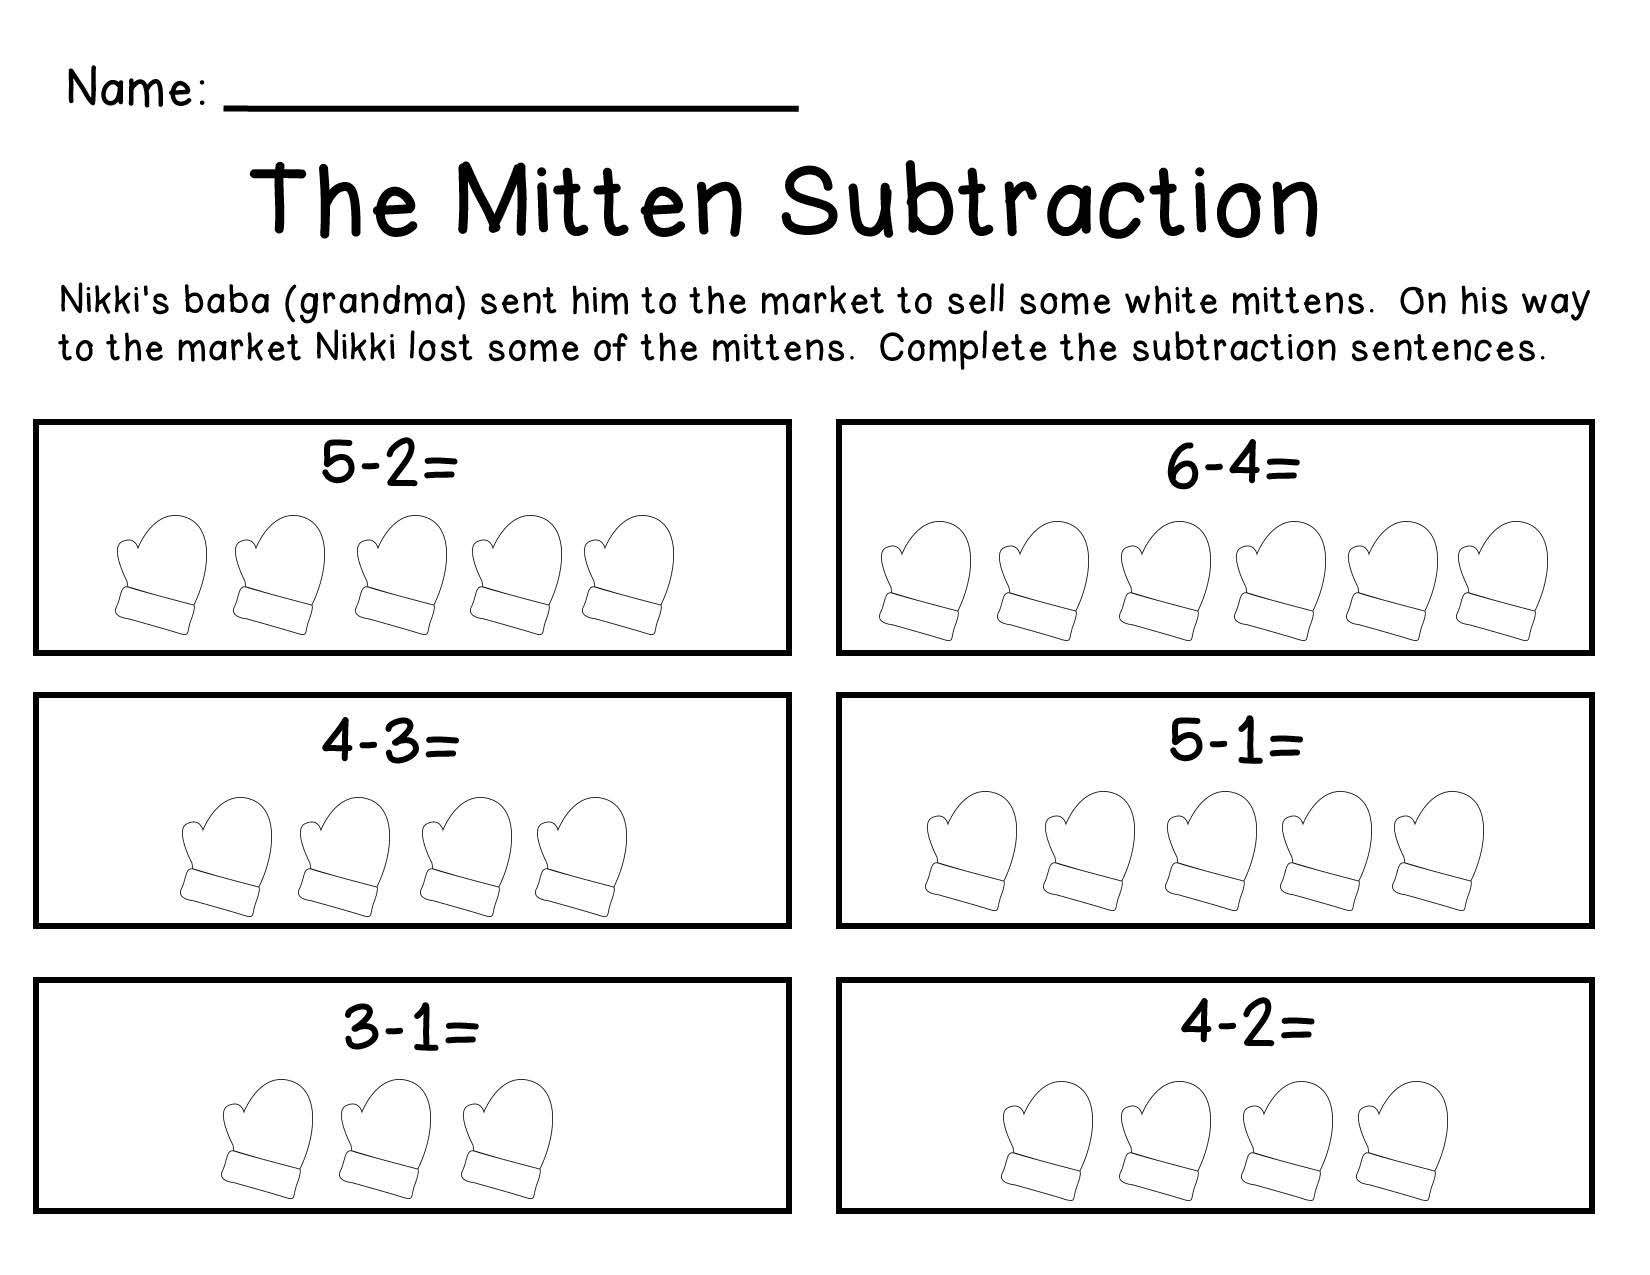 The Mitten Subtraction